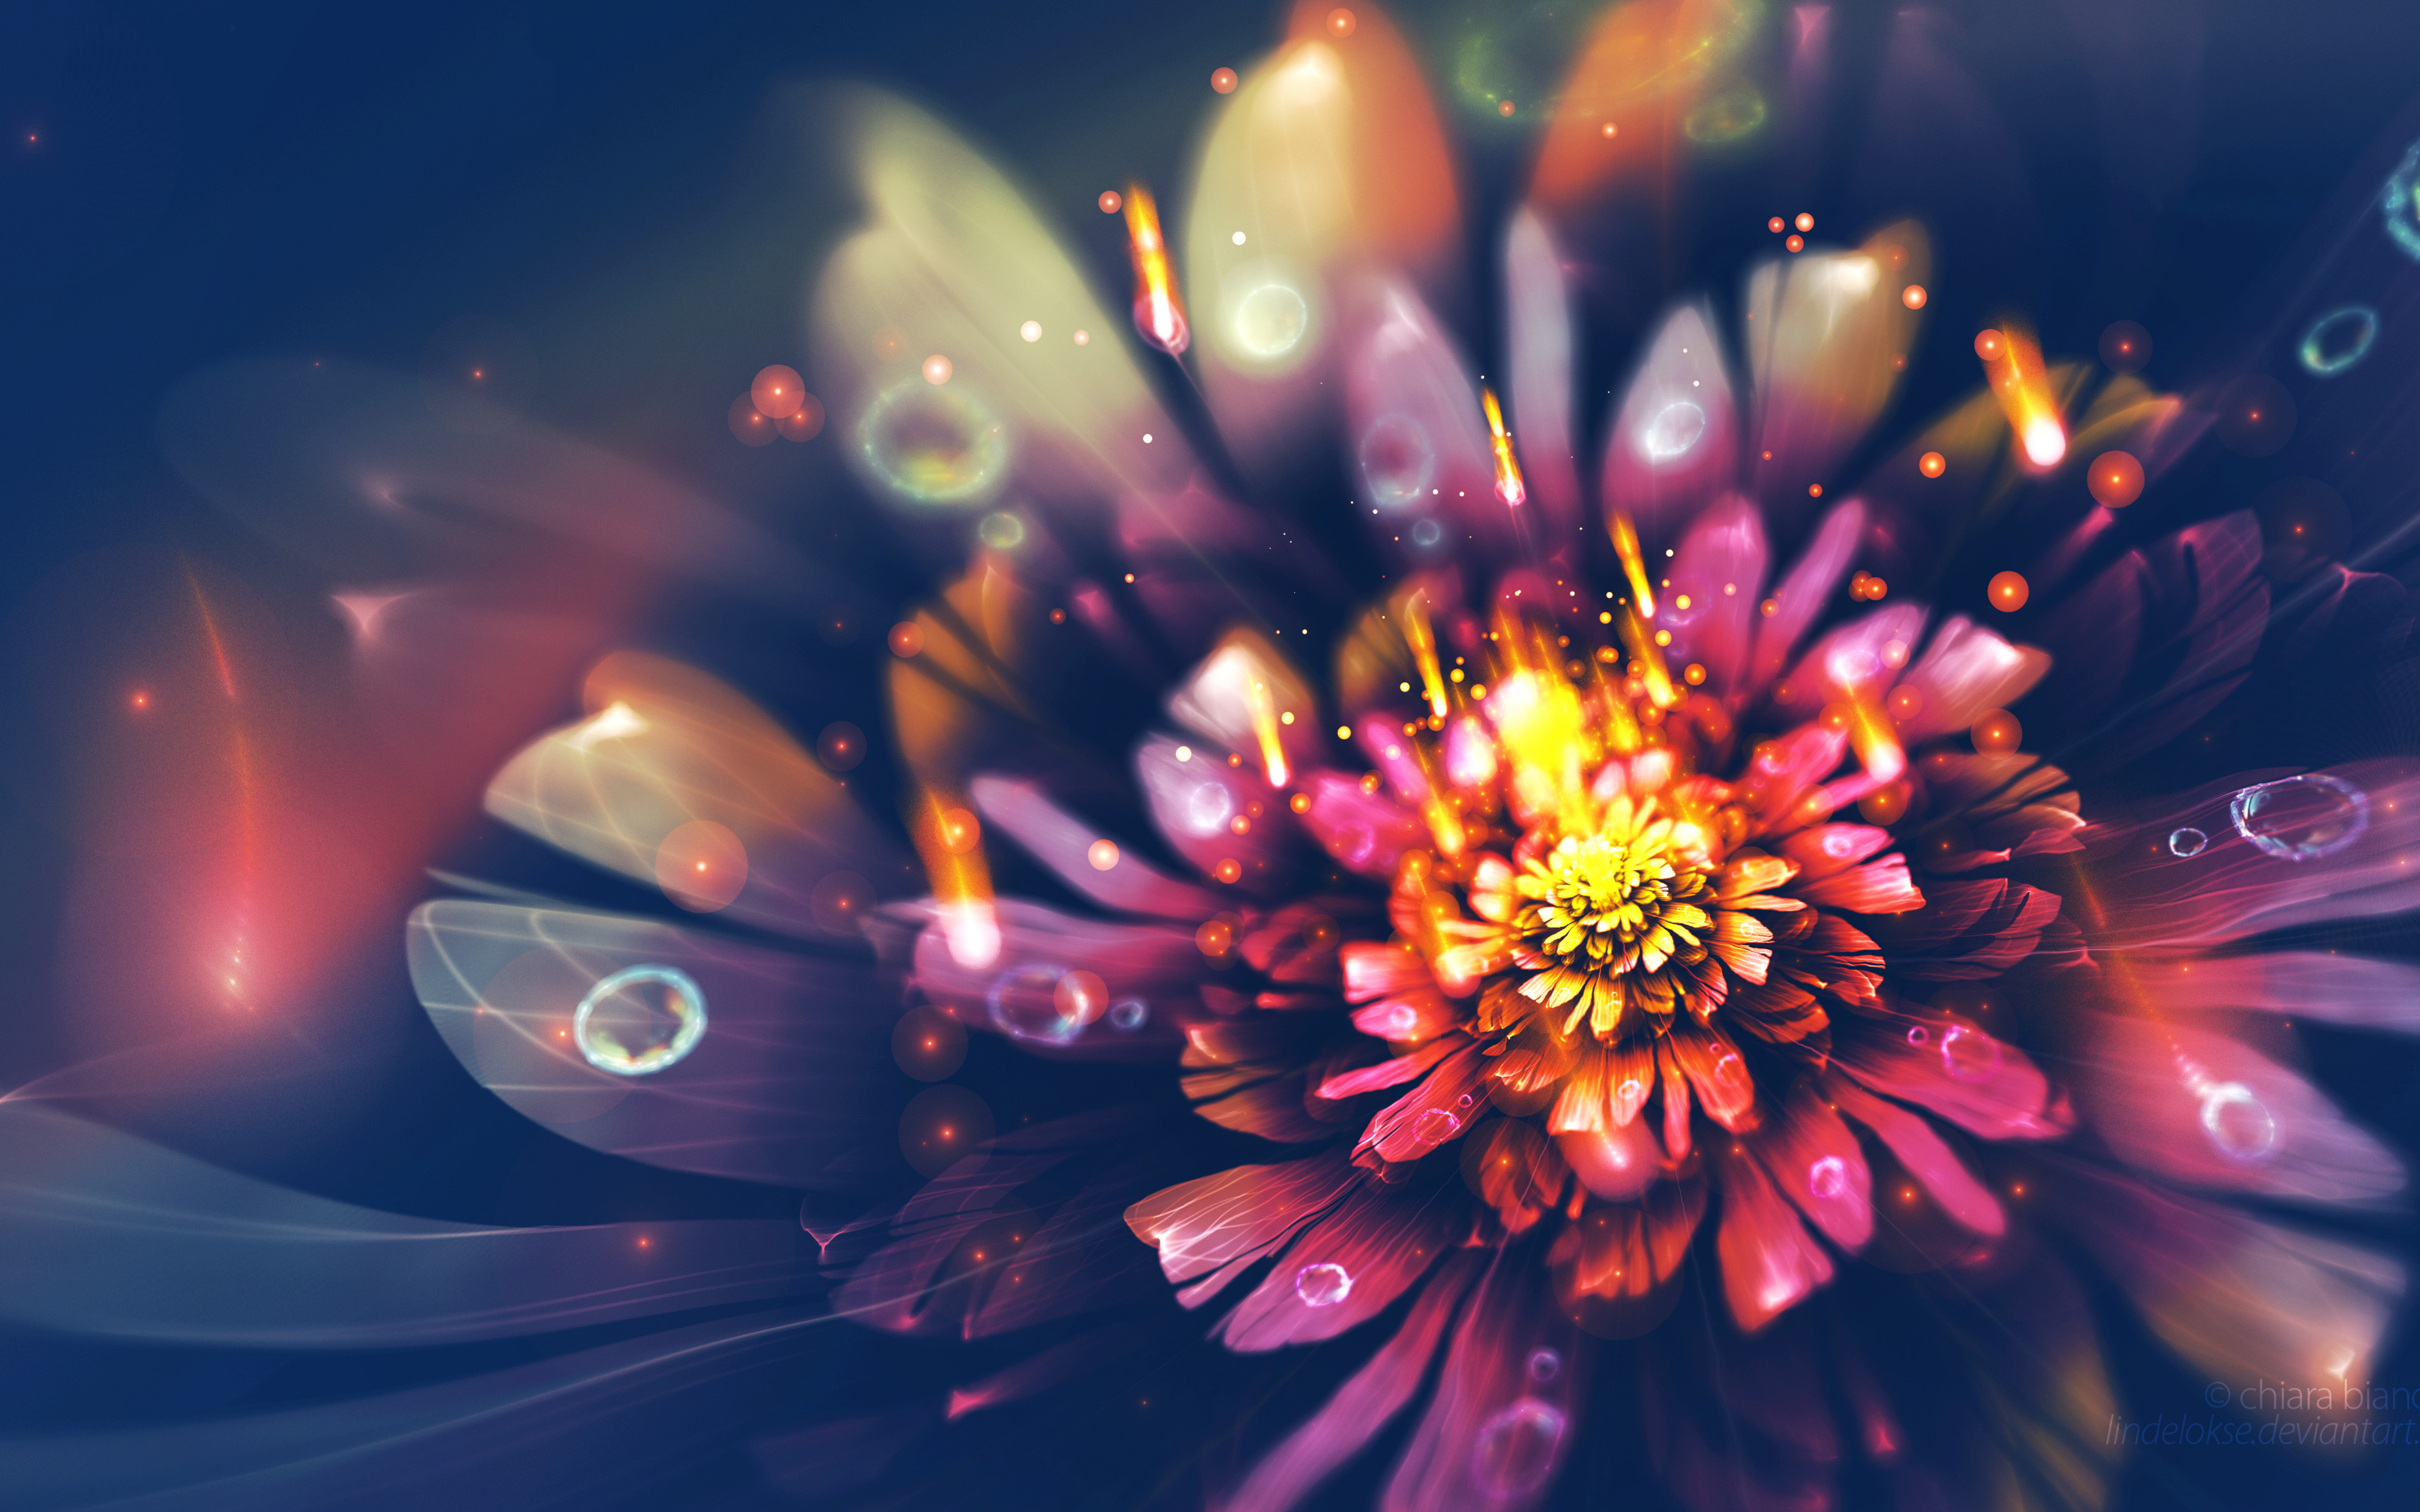 digital-flower-fractal-arts-4k-yl.jpg